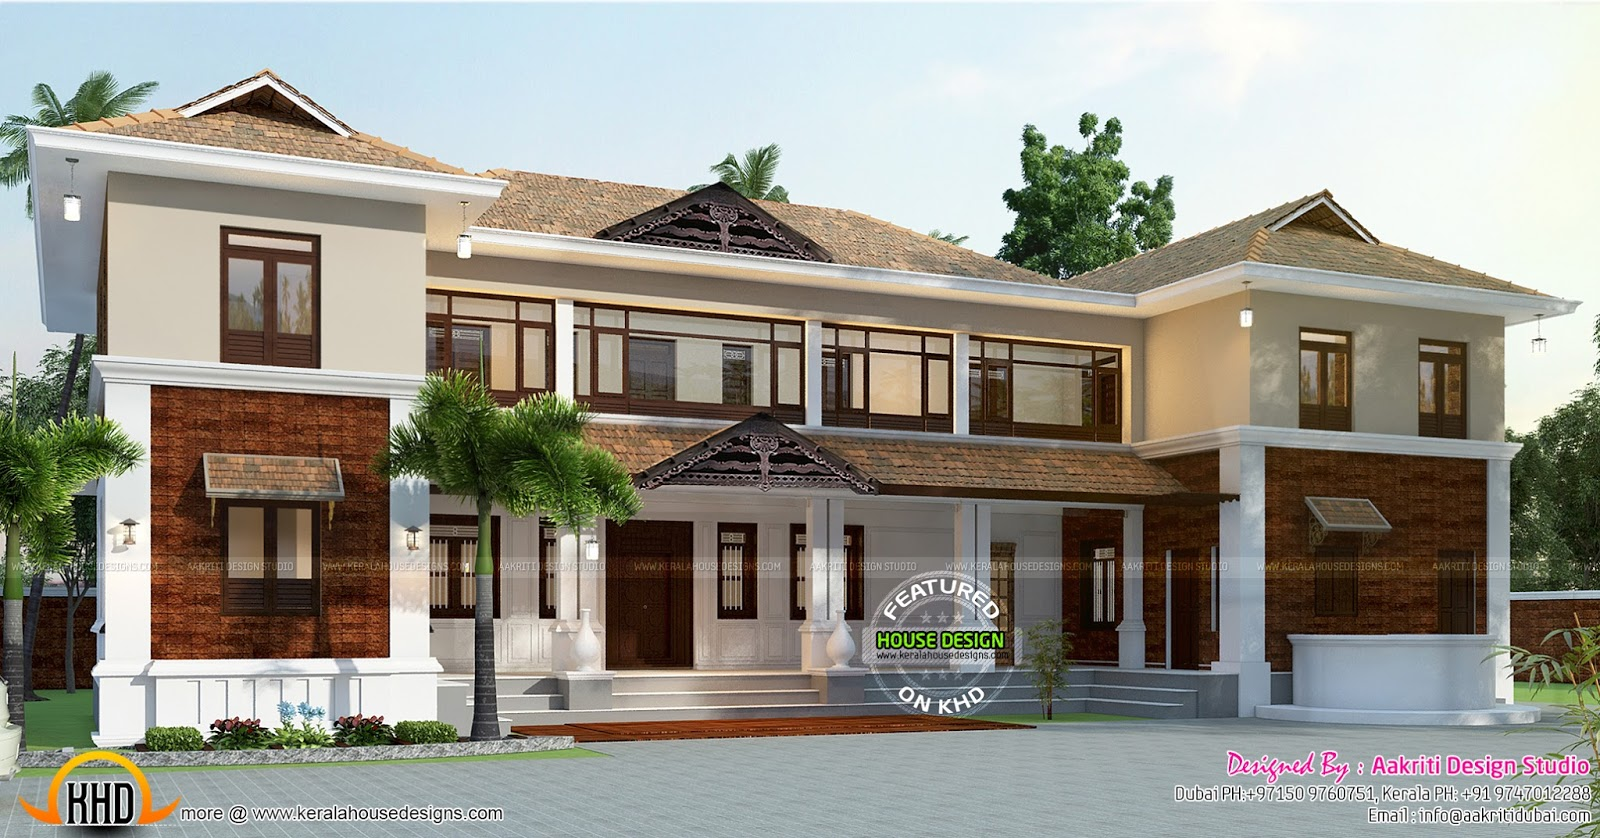 House renovation work by aakriti design studio kerala home design and floor plans Home design and renovation